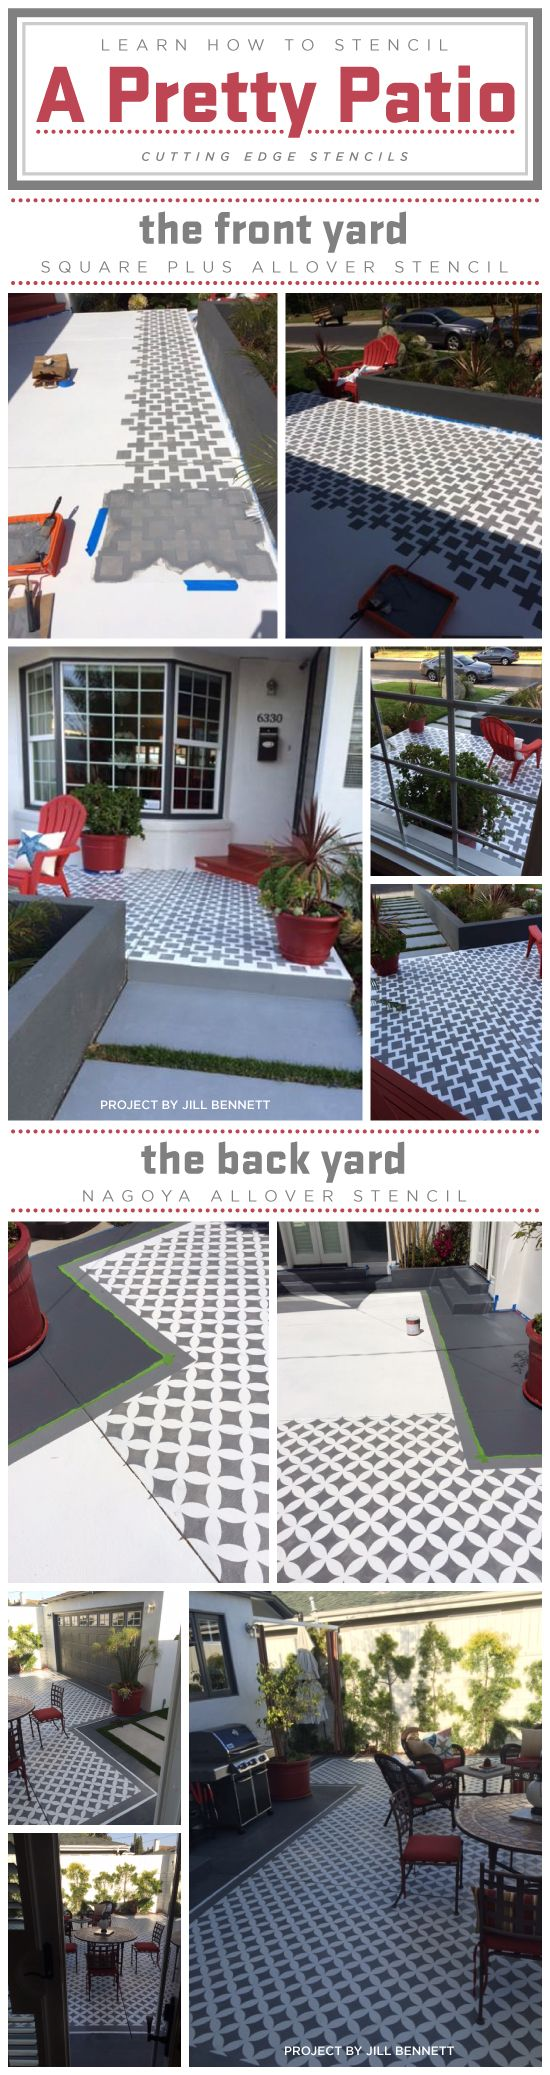 Stencil Tutorial: How to stencil a pattern on a patio using Cutting Edge Stencils. http://www.cuttingedgestencils.com/wall-stencils-stencil-...